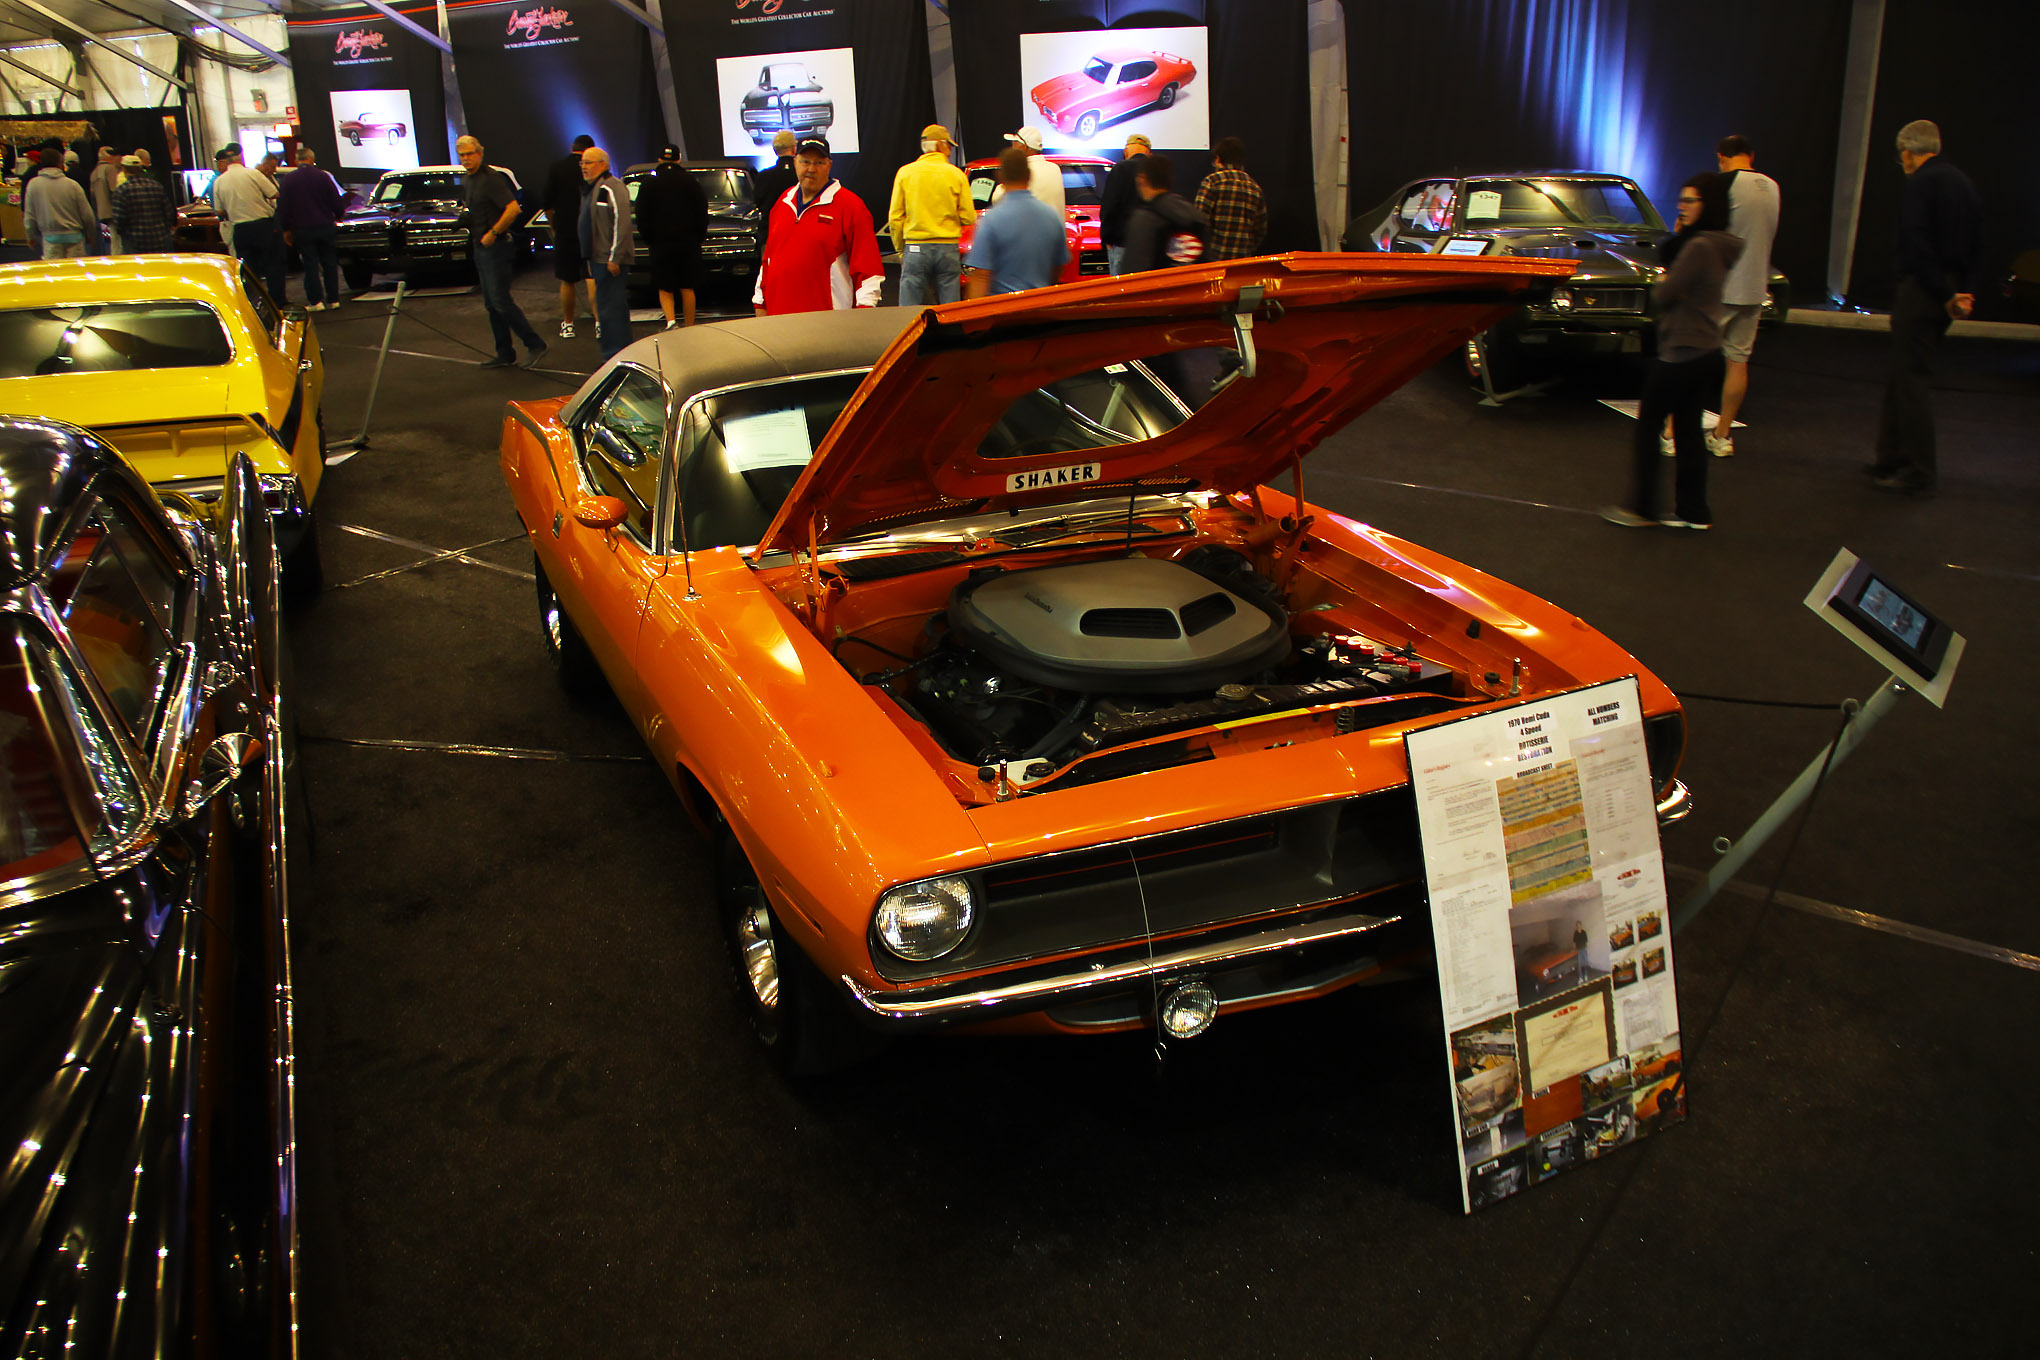 This original 1970 Hemi 'Cuda sold for $247,500.